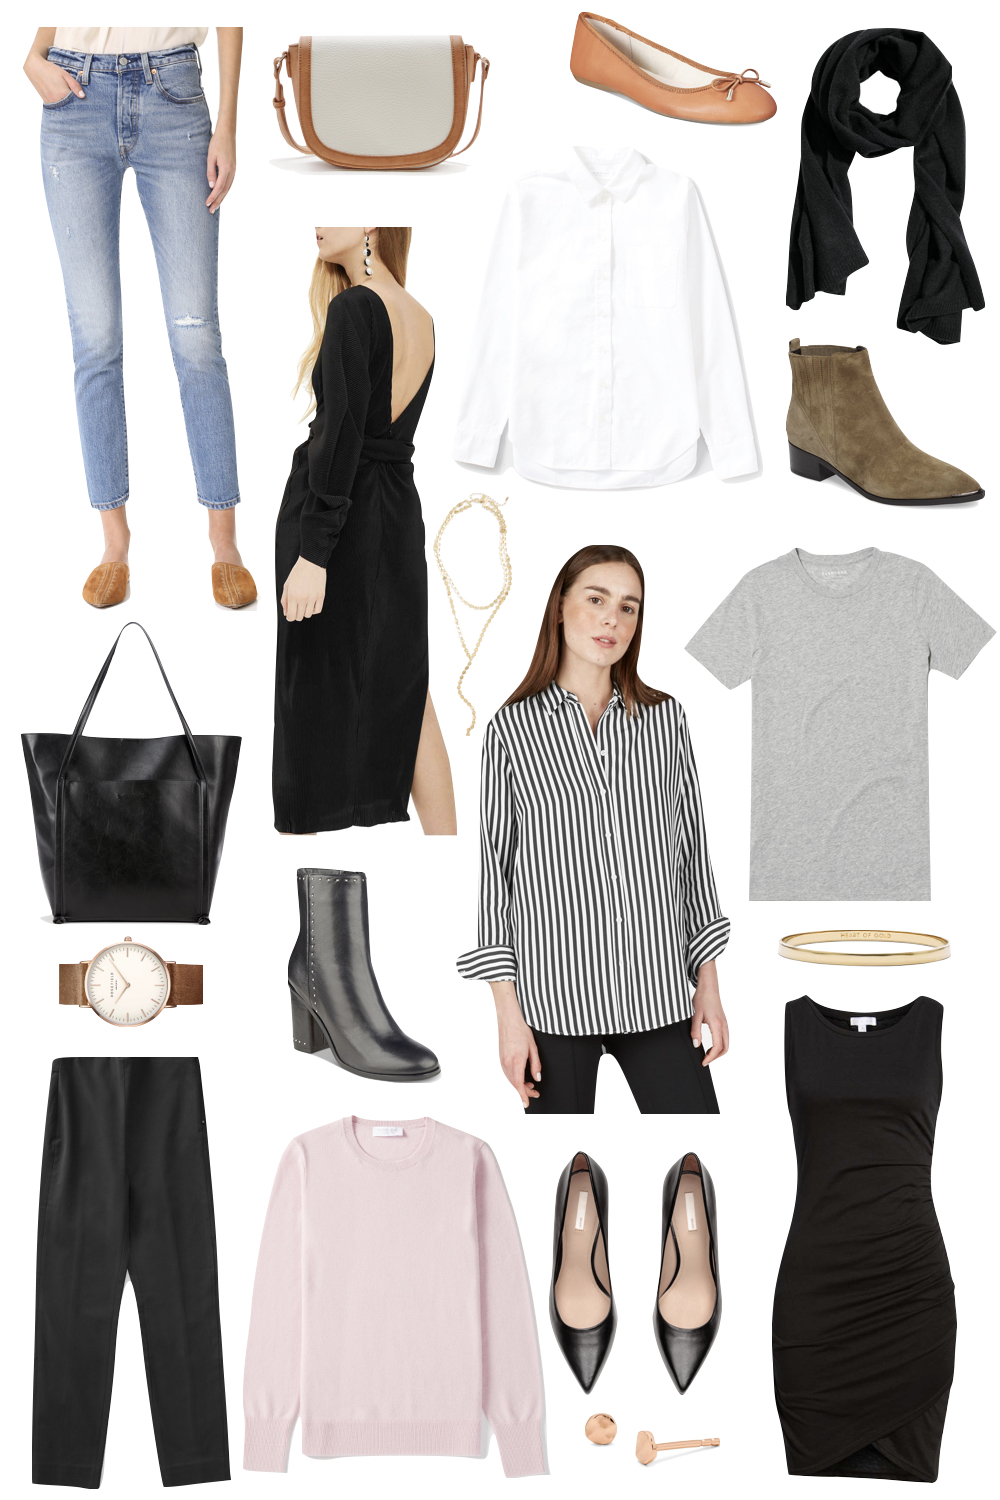 Wardrobe Essentials Under $100